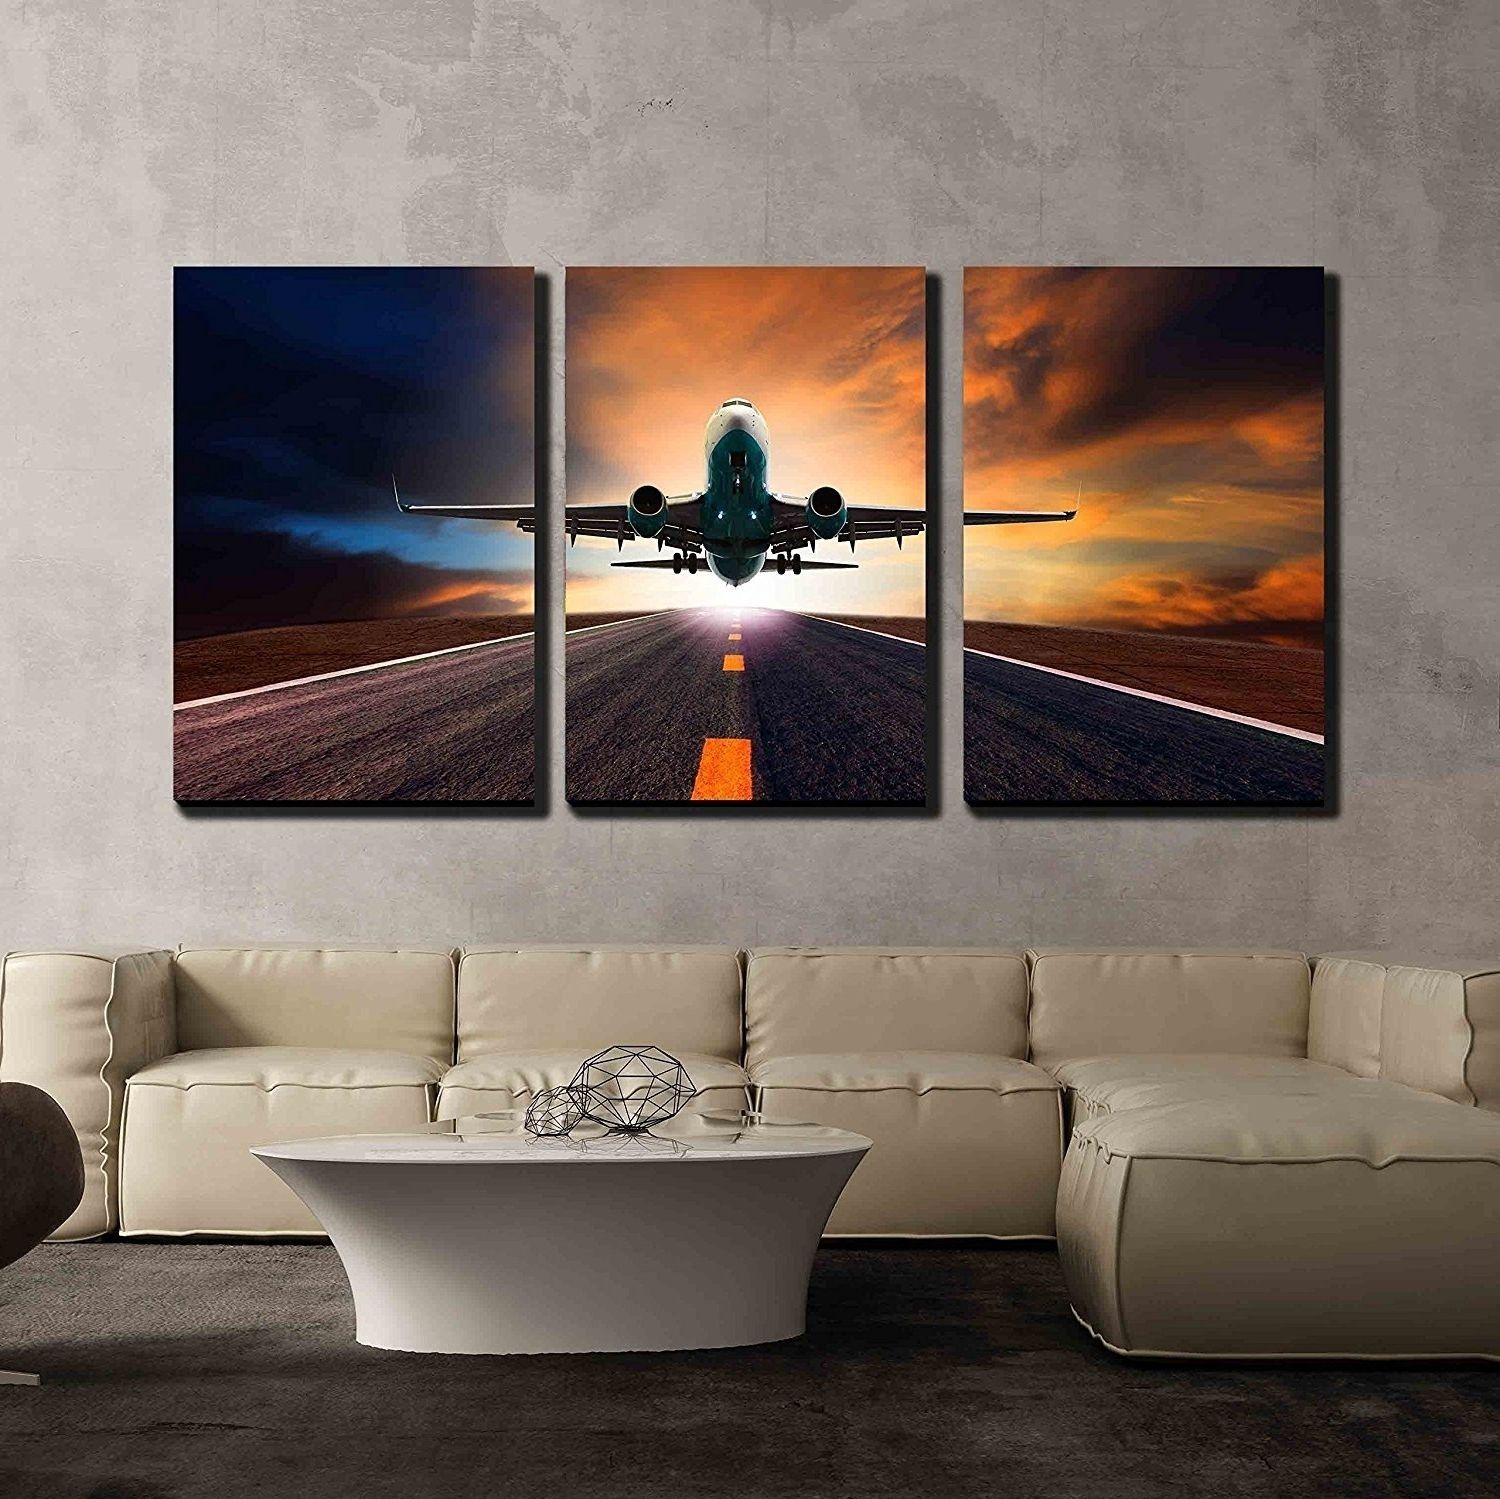 Incredible View Photos Of Multi Piece Canvas Wall Art Showing Pict Regarding Most Up To Date Multi Piece Wall Art (Gallery 8 of 20)